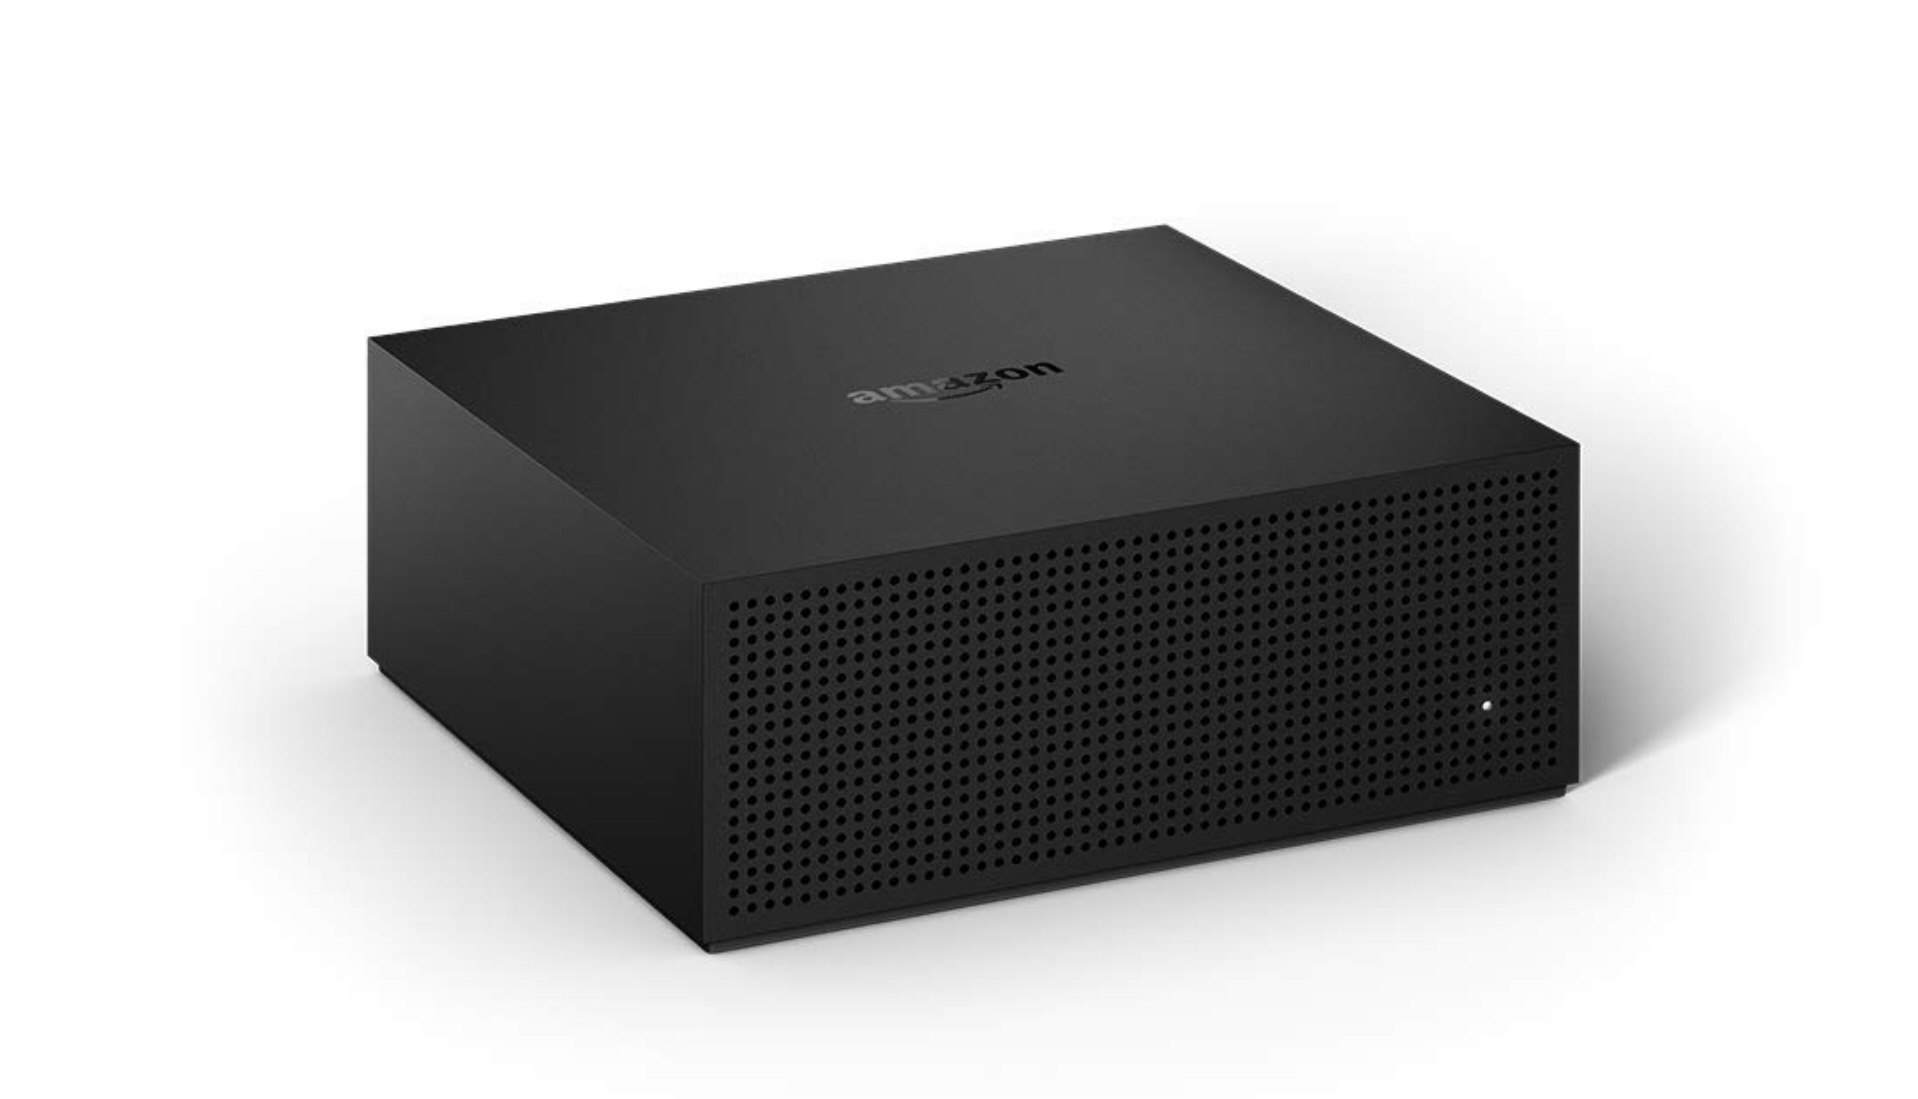 The Amazon DVR is real, and starts at $230